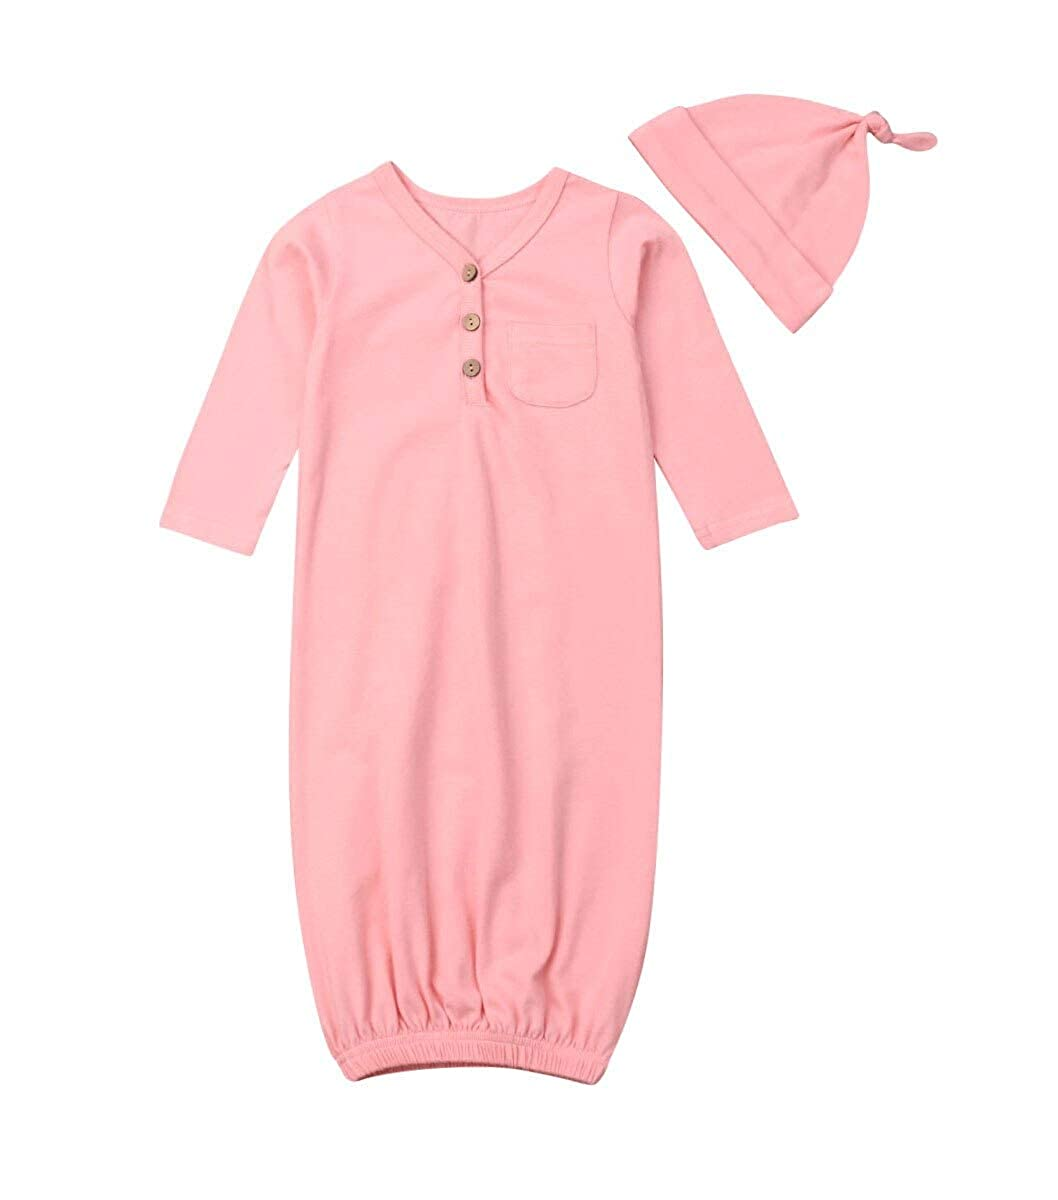 Newborn Baby Boy Girl Cotton Nightgown Long Sleeve Button Solid Color Sleeper Gown with Hat Sleepwear Set